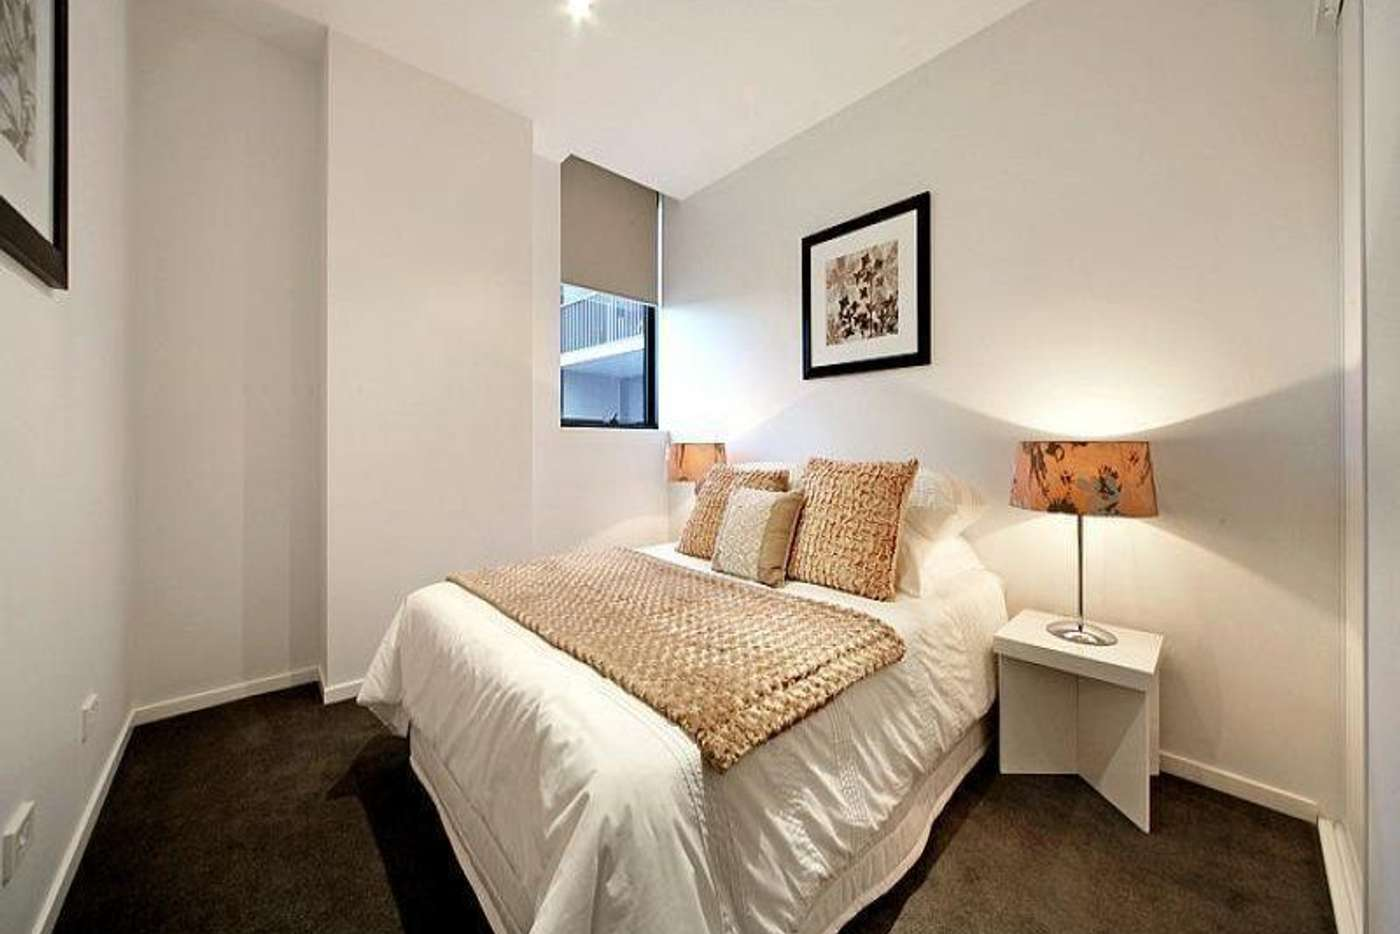 Sixth view of Homely apartment listing, 125/73 River Street, Richmond VIC 3121